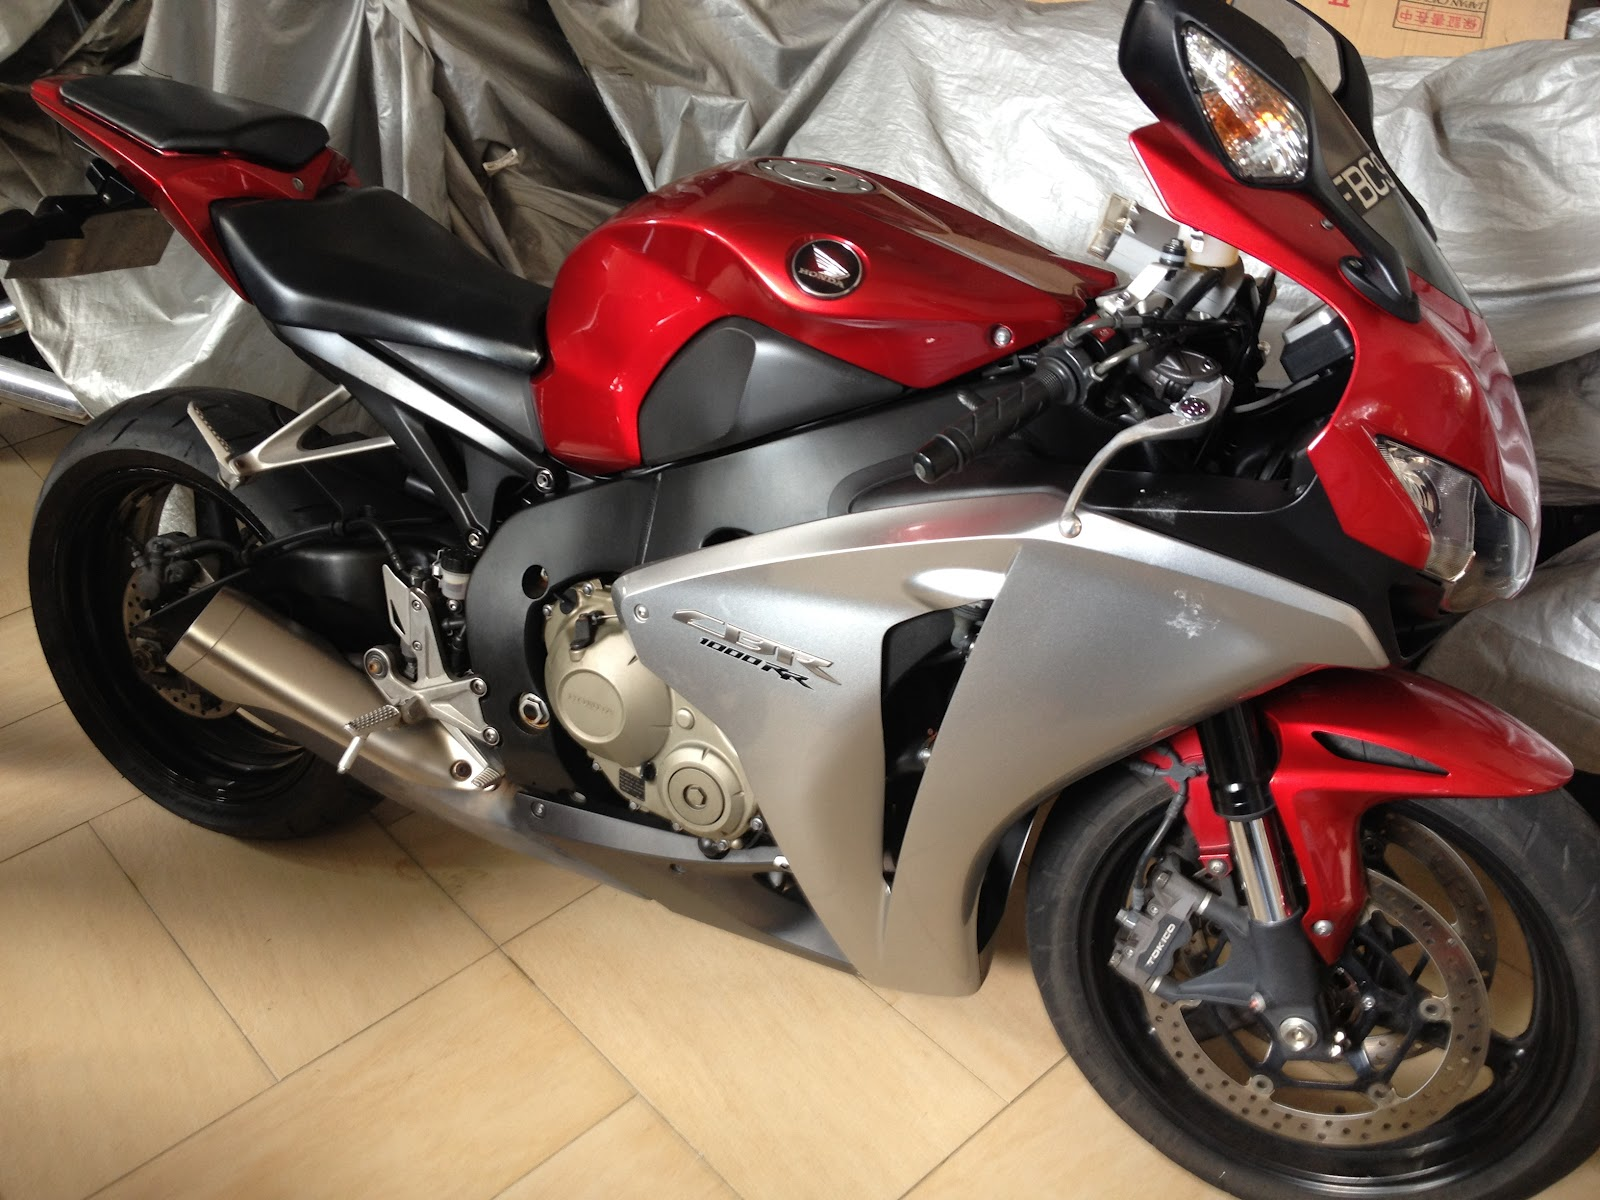 Super Great Sportbikes For Sale Honda Cbr 1000 Rabbit